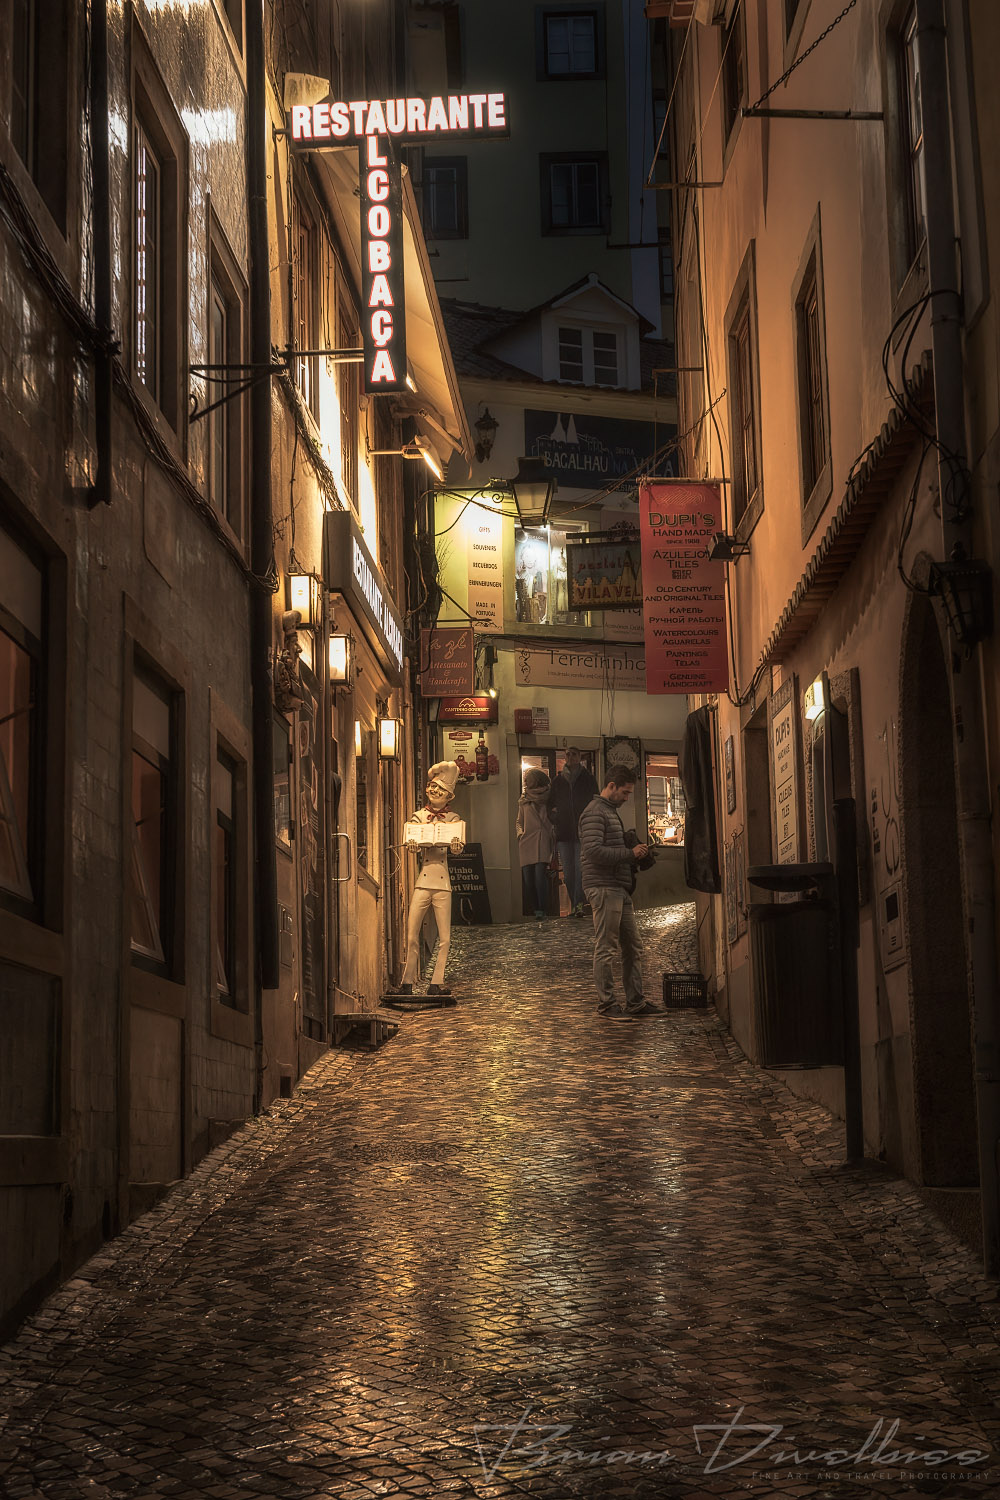 Rainy street at night in Sintra, Portugal.